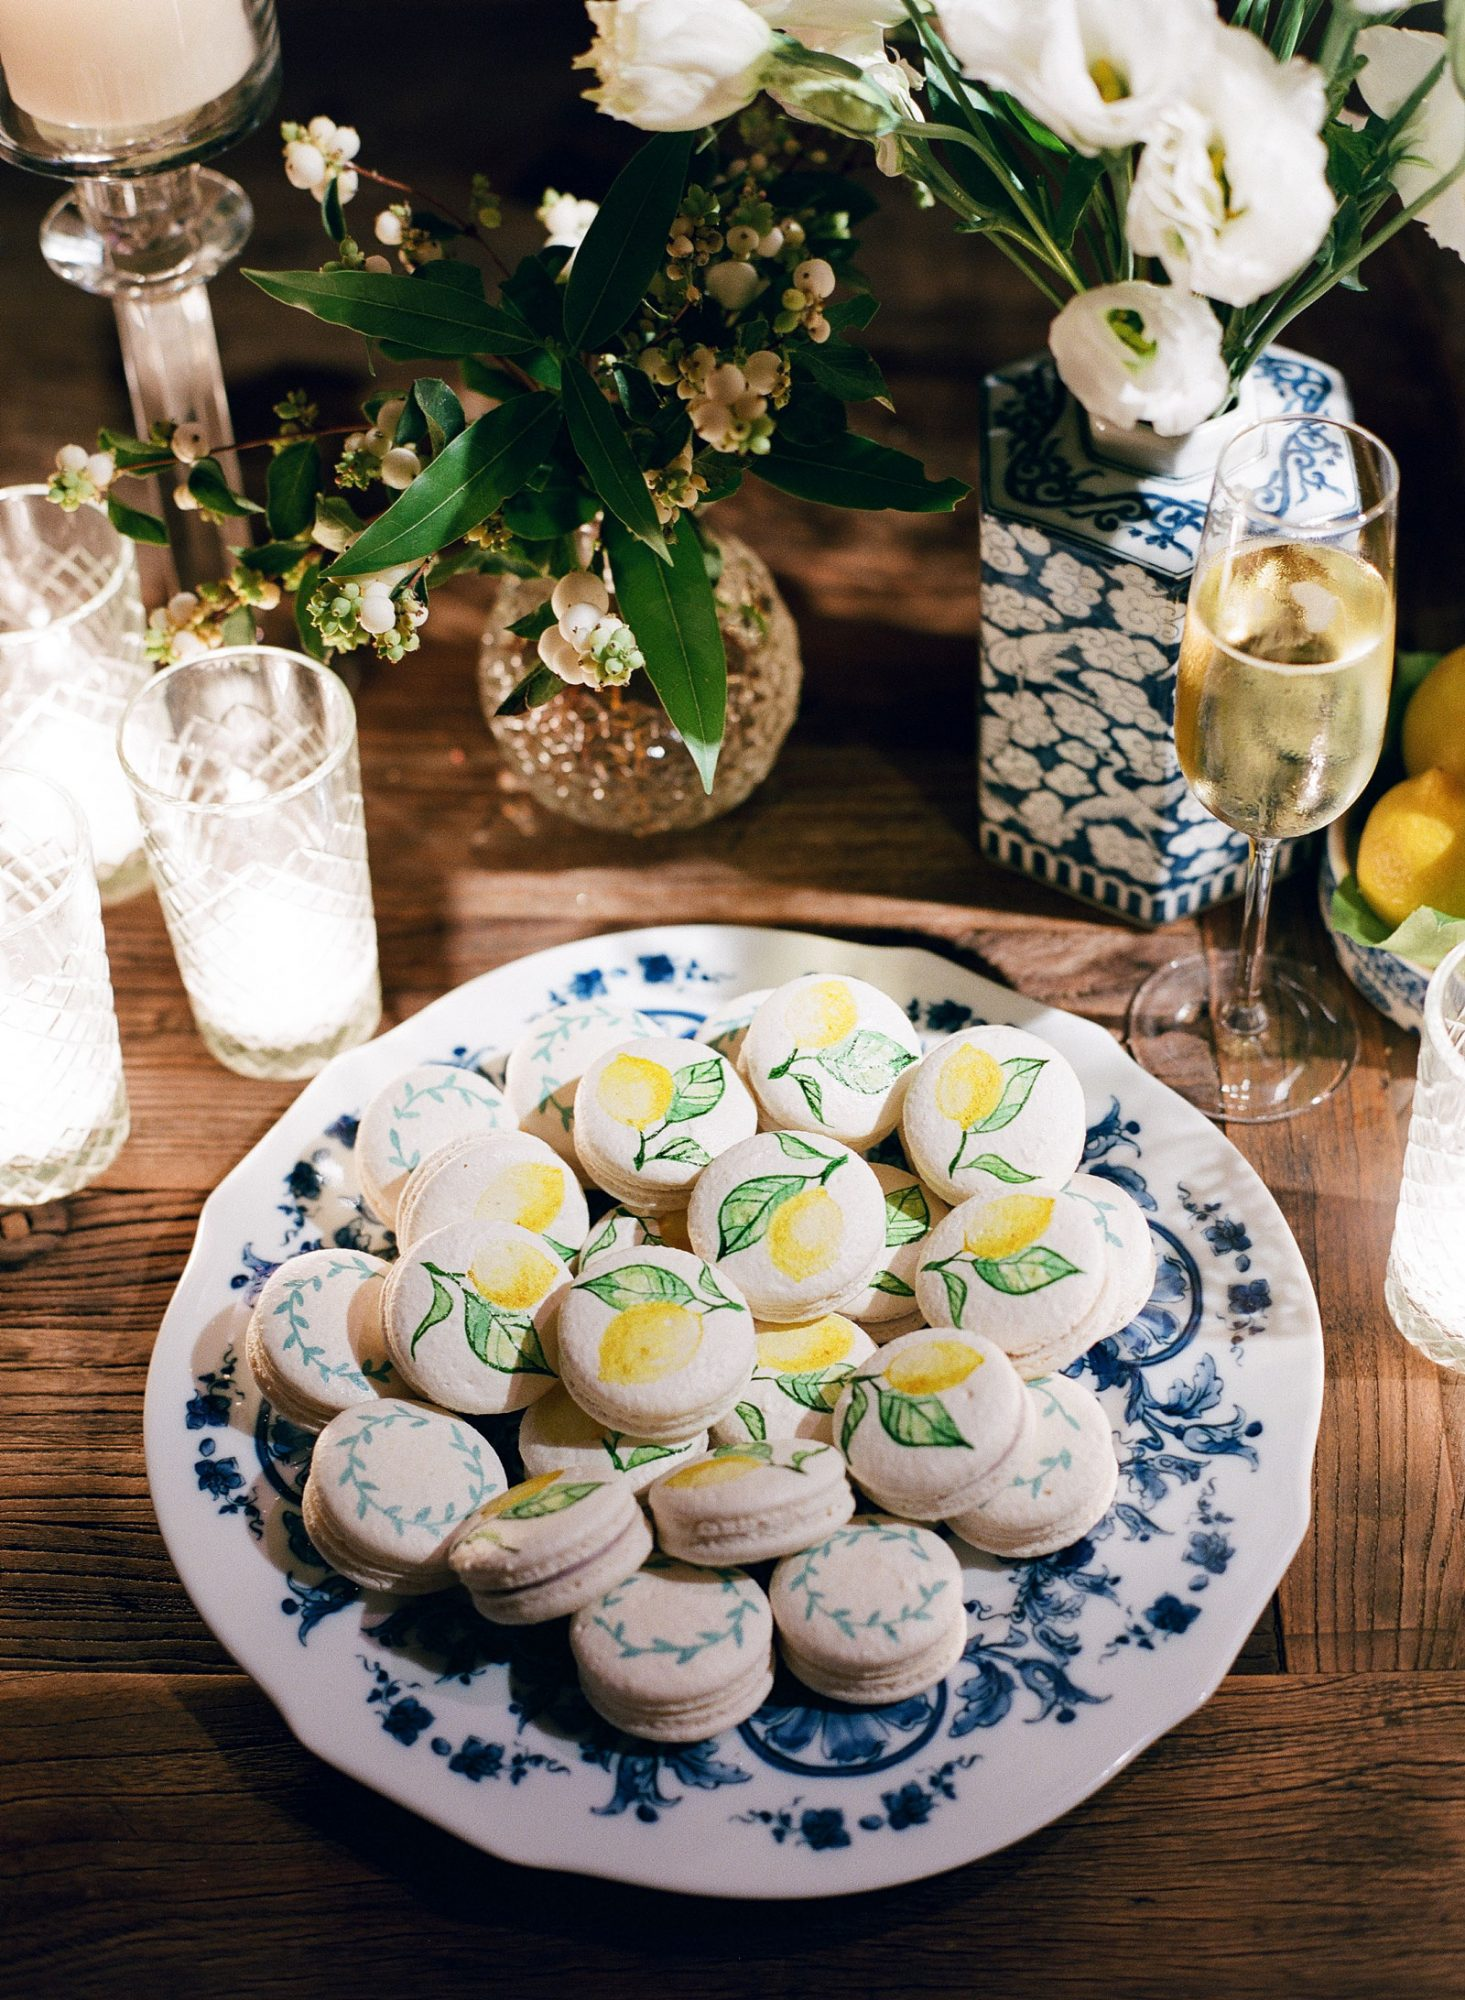 plate of hand decorated macaroons